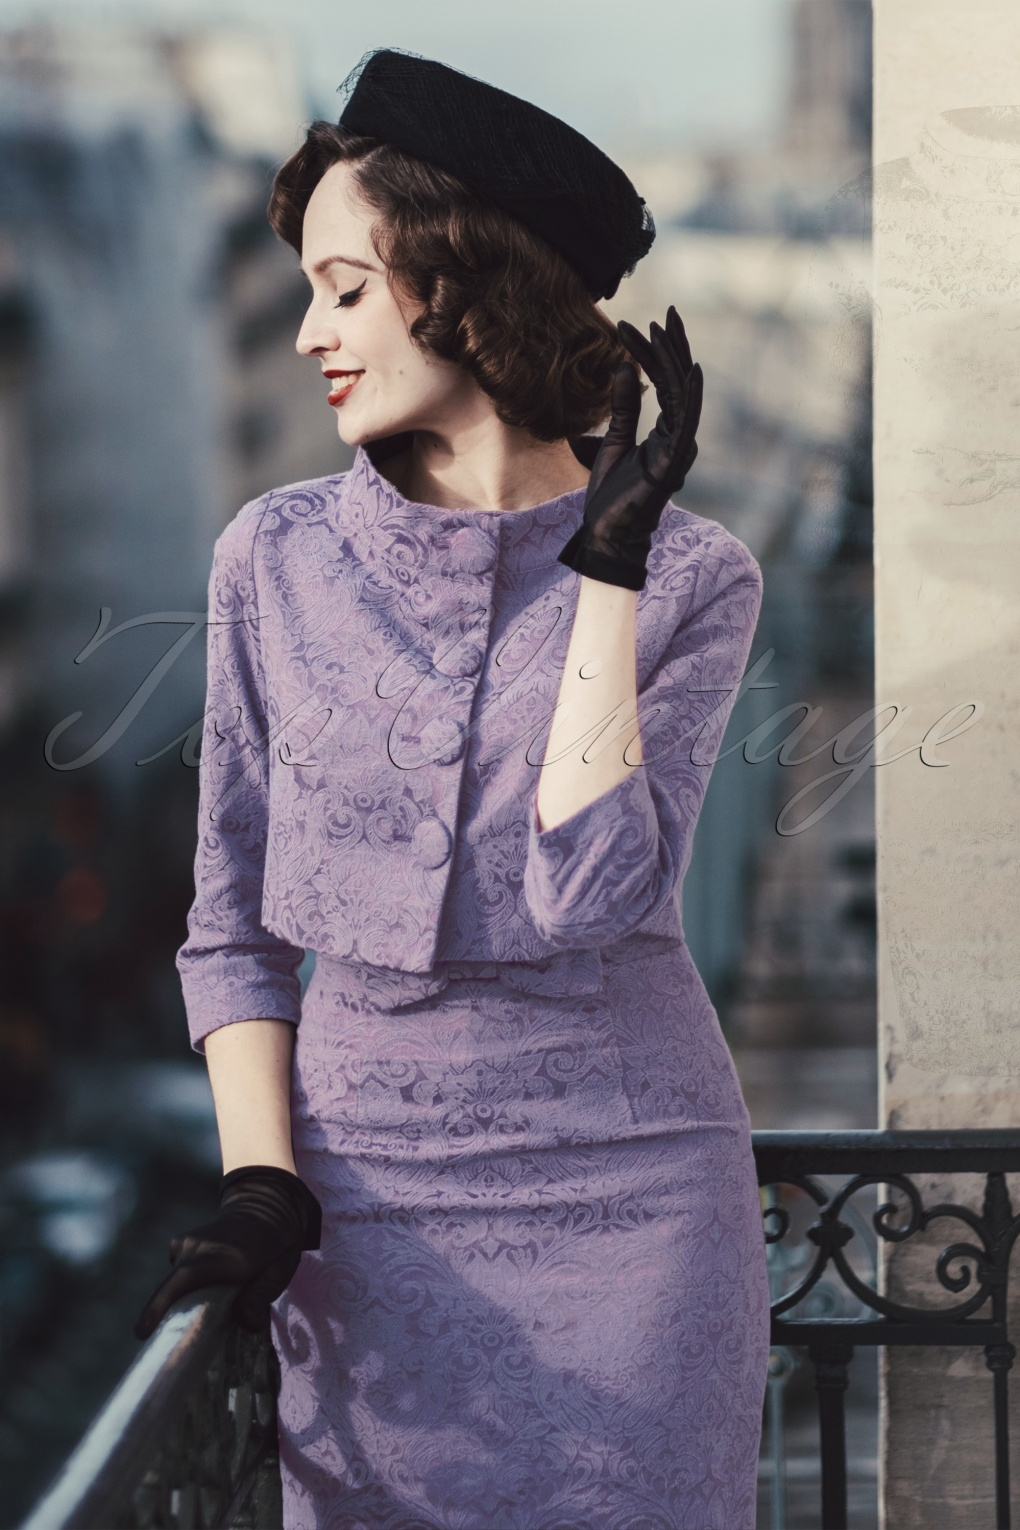 500 Vintage Style Dresses for Sale 60s Maybelle Jacquard Twin Set in Amethyst £74.18 AT vintagedancer.com